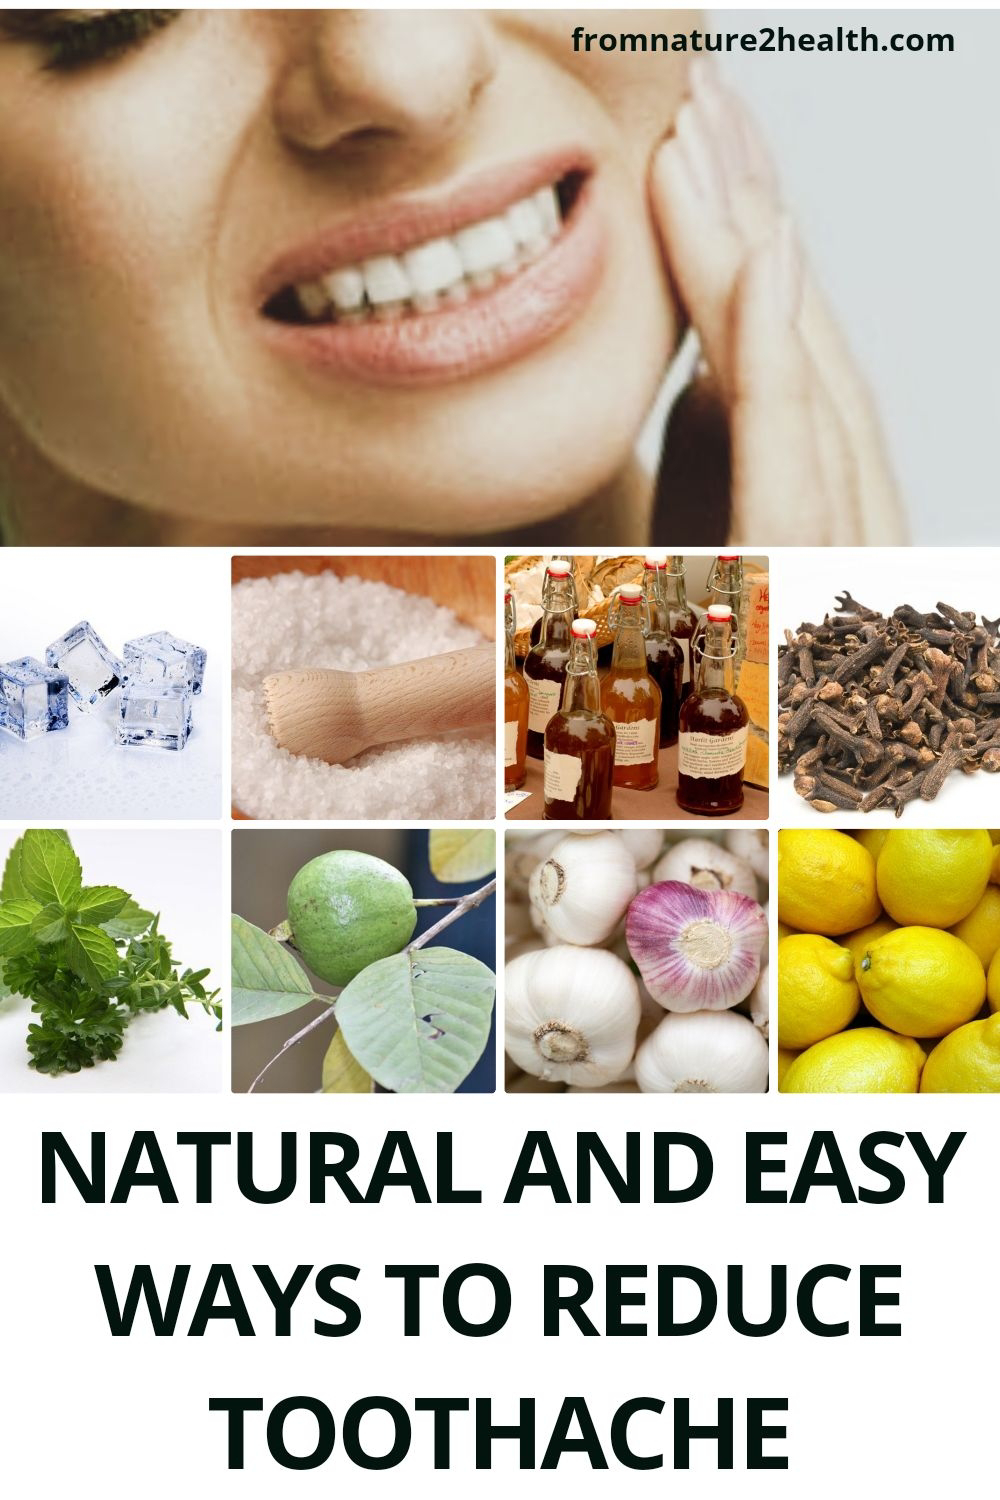 natural-and-easy-ways-to-reduce